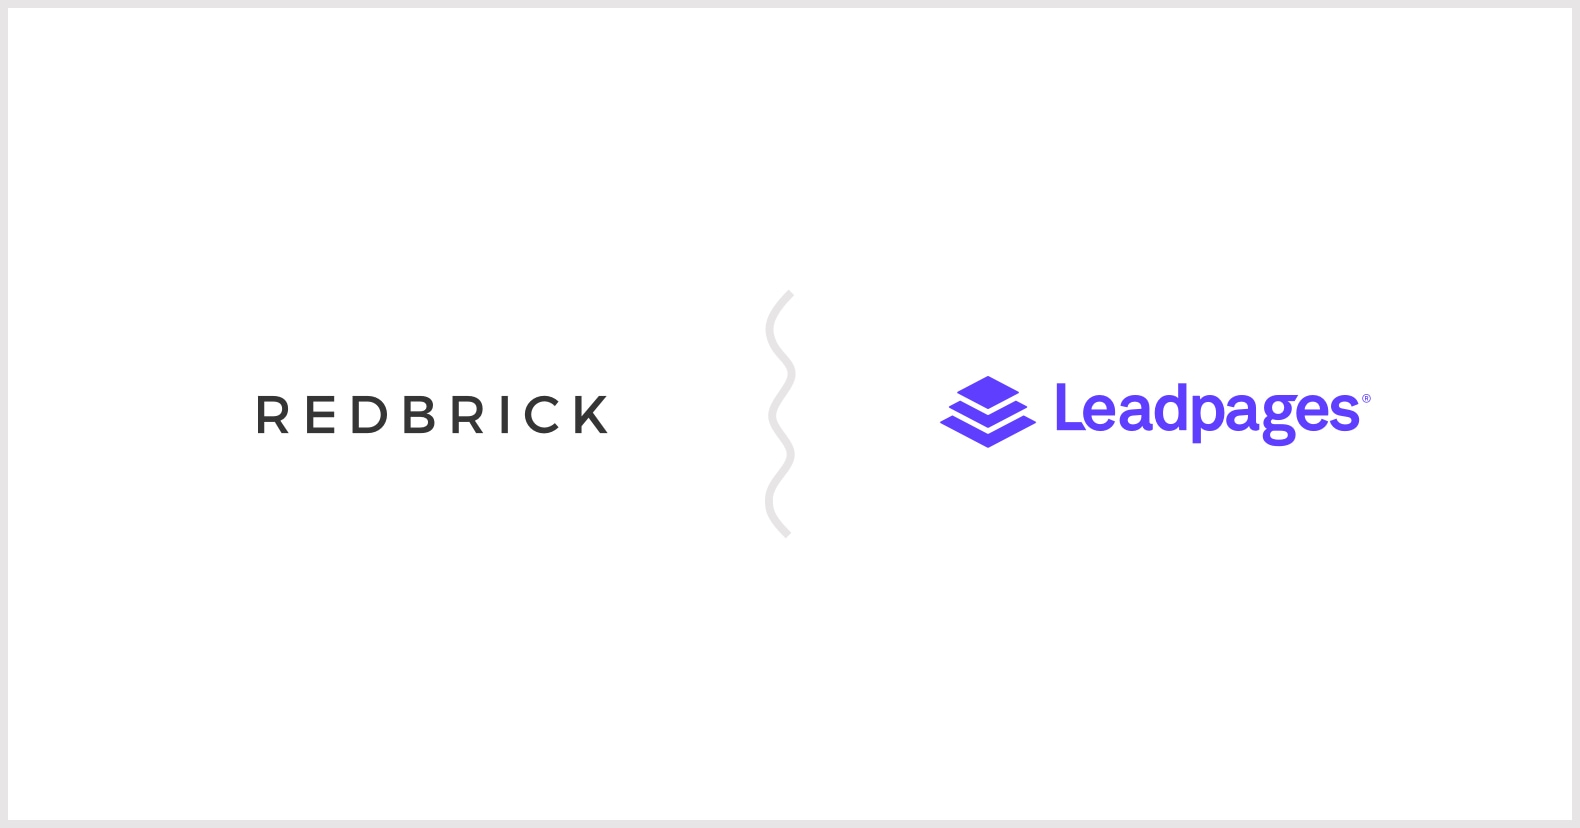 Leadpages joins Redbrick